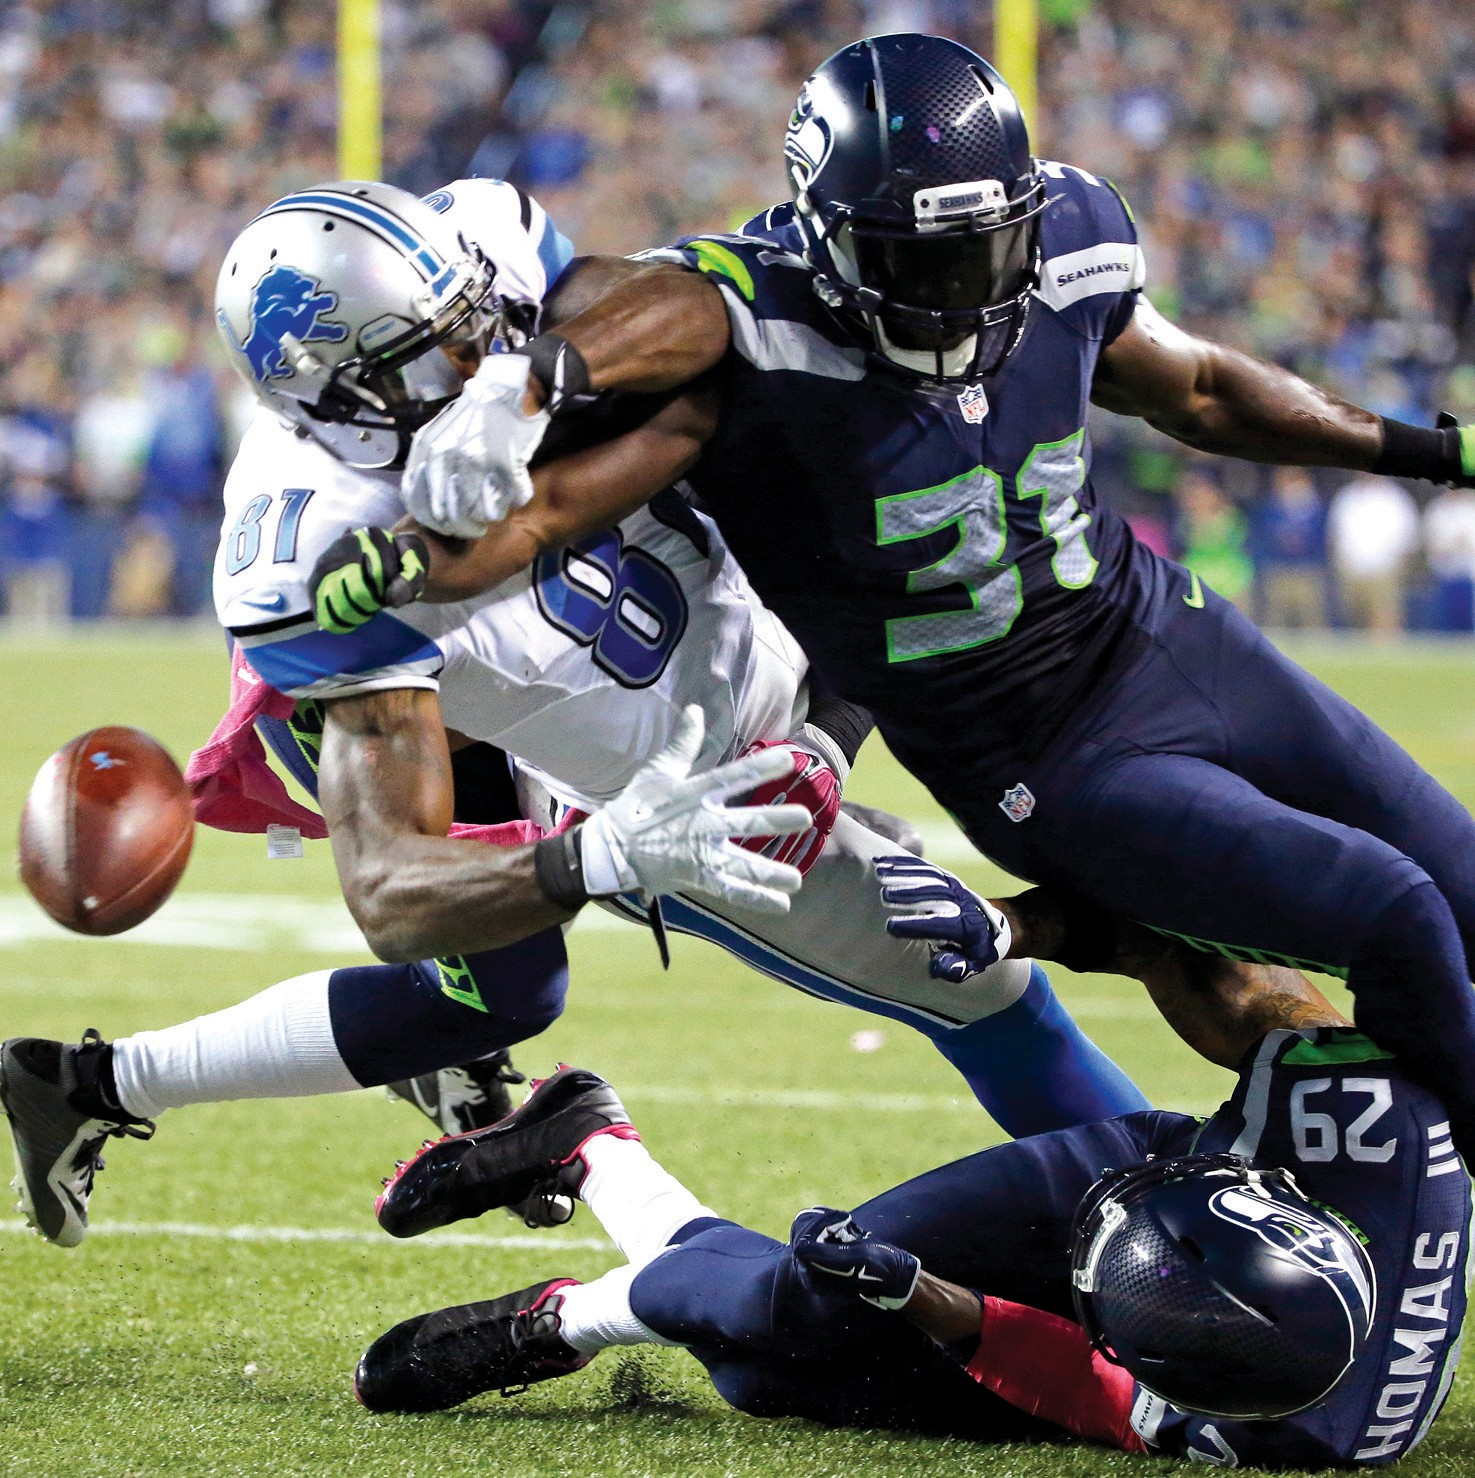 Seattle Seahawks strong safety Kam Chancellor (31) knocks the ball loose from Detroit Lions wide receiver Calvin Johnson (81) in the second half on Monday in Seattle. The fumble went out of bounds in the end zone and was ruled a touchback. The Seahawks beat the Lions 13-10.